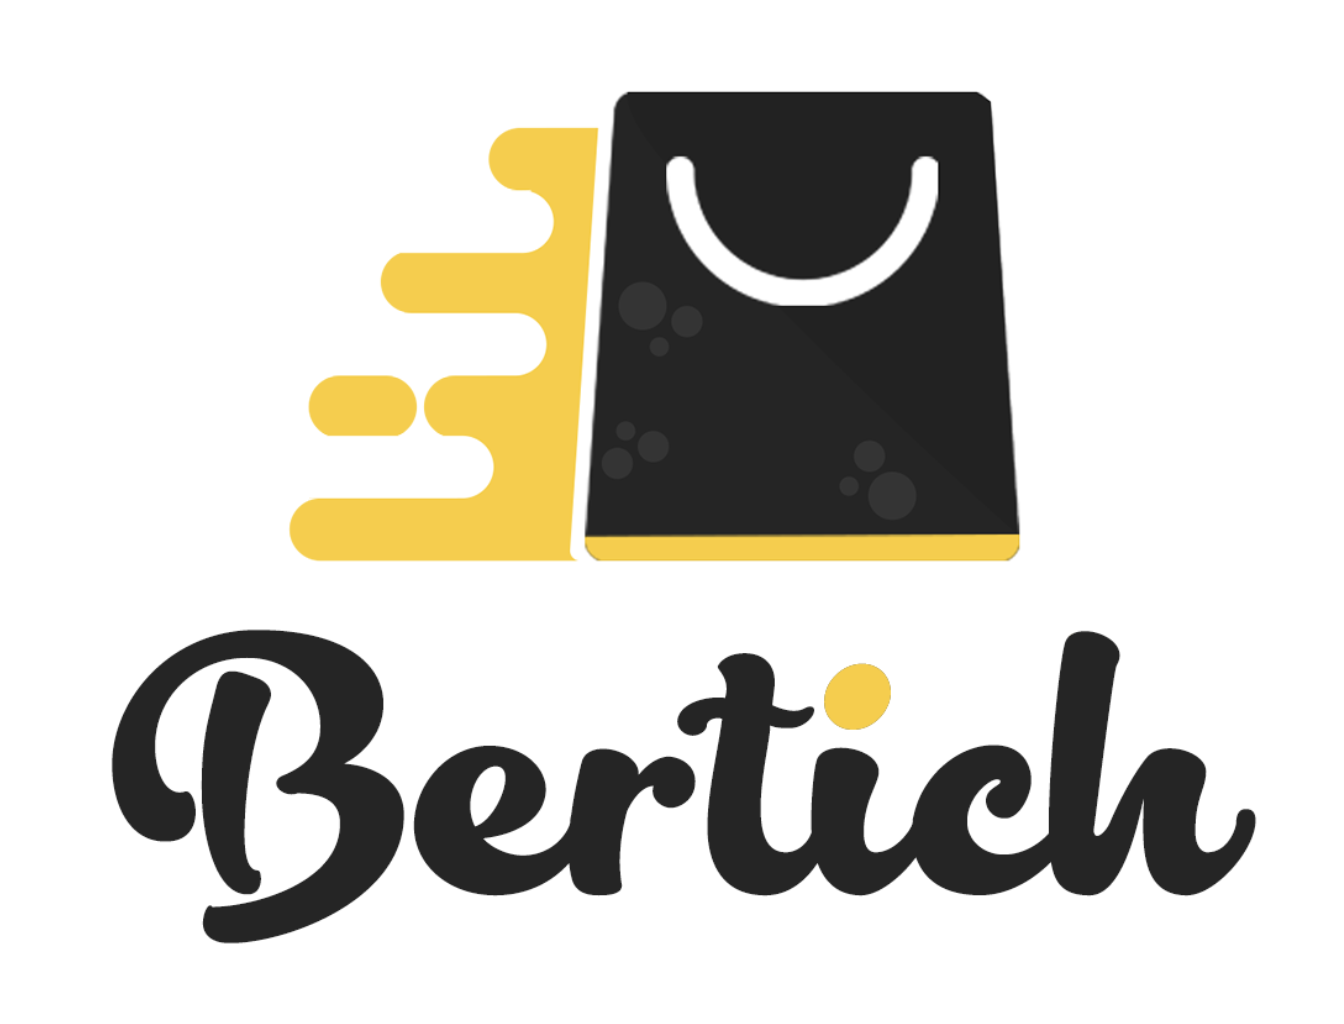 bertich.com Shop for everything but the ordinary. More than 30,000 sellers offering you a vibrant collection of fashion, collectibles, home decor, and more.